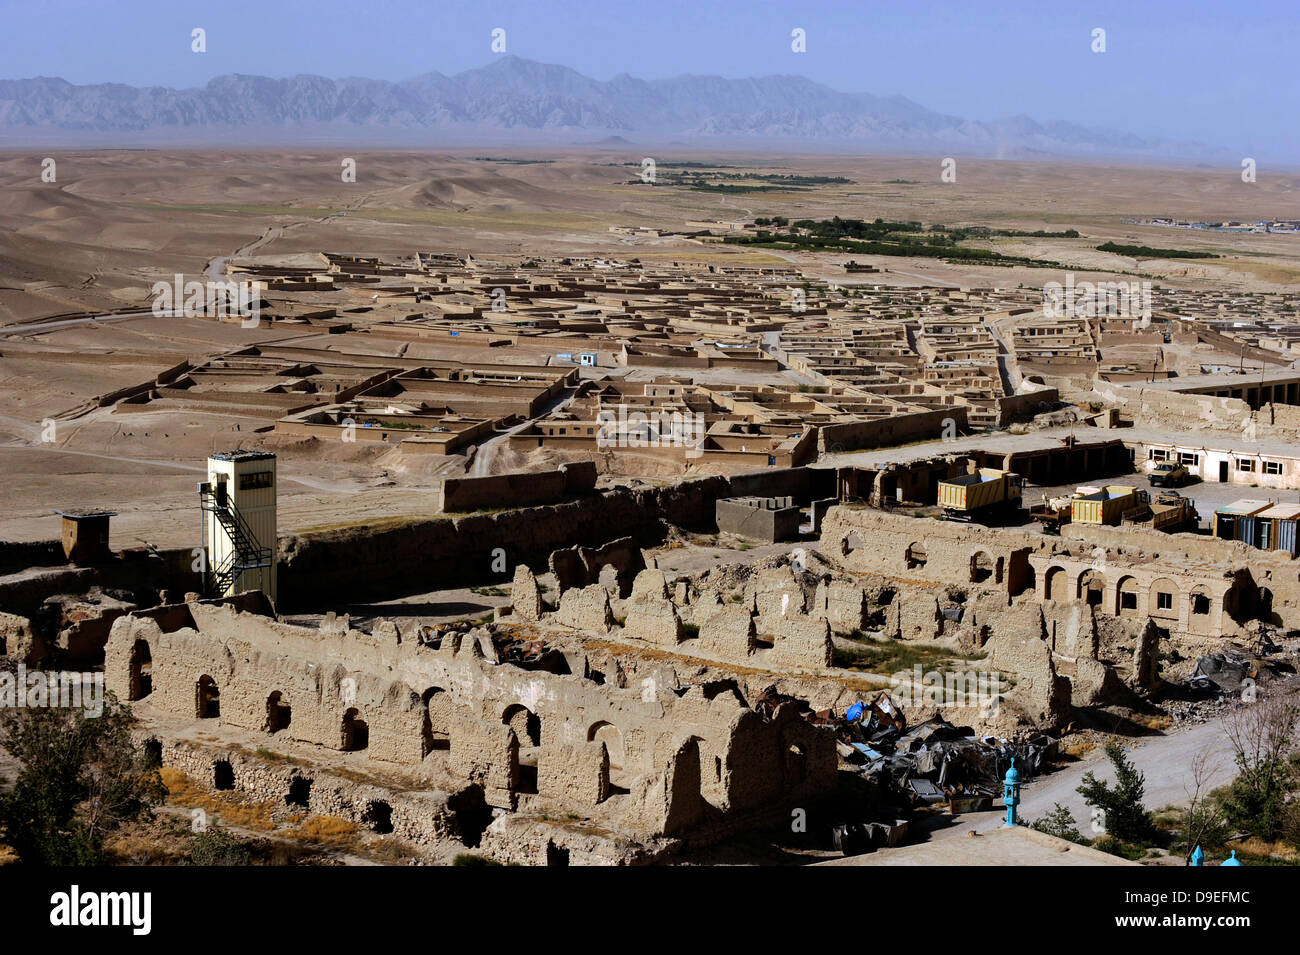 Remains of Alexander the Great's Castle in Qalat City, Afghanistan. - Stock Image